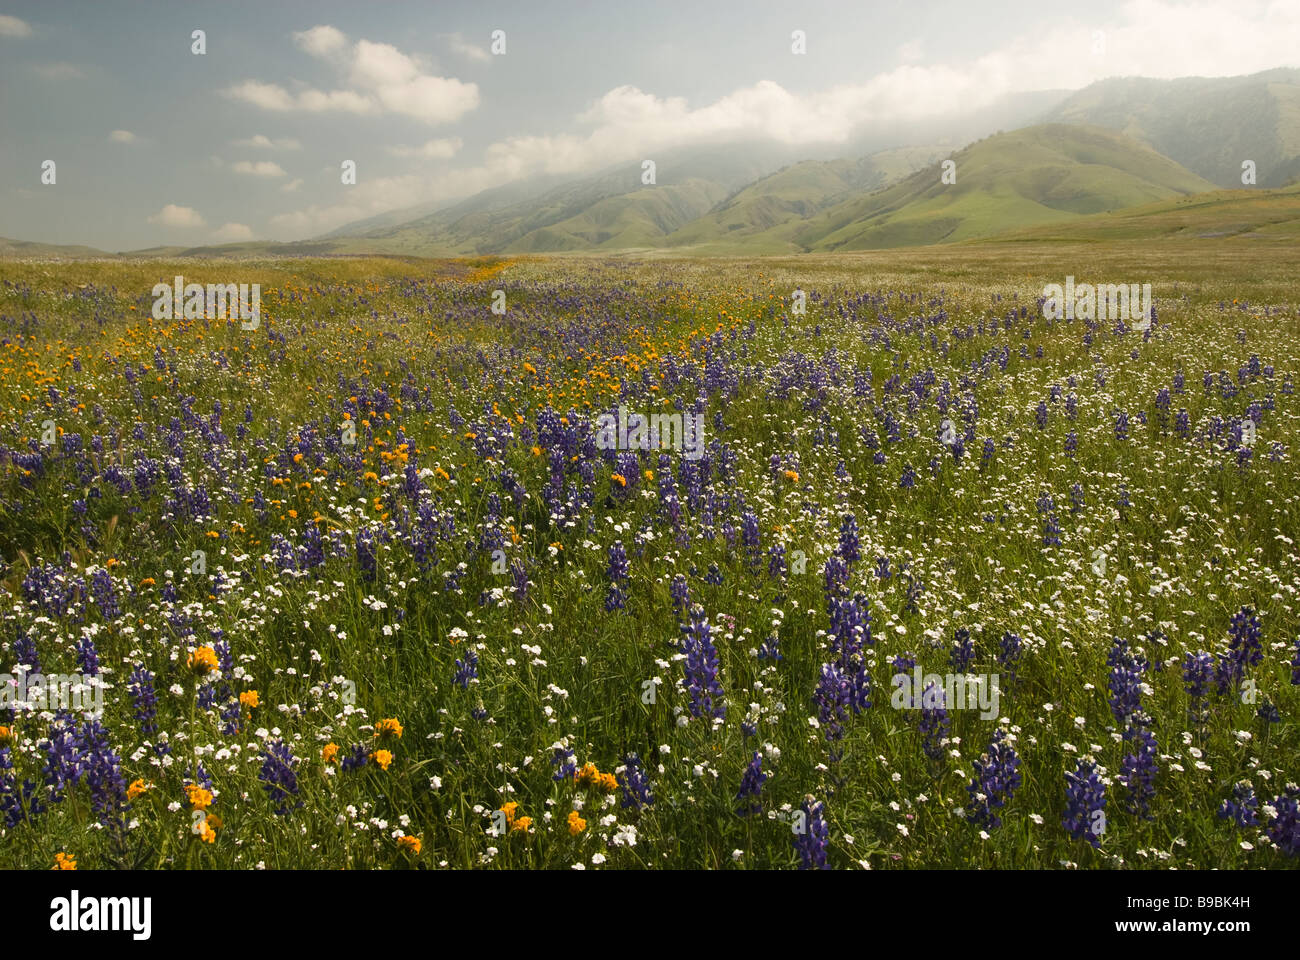 California wildflowers in Central California - Stock Image